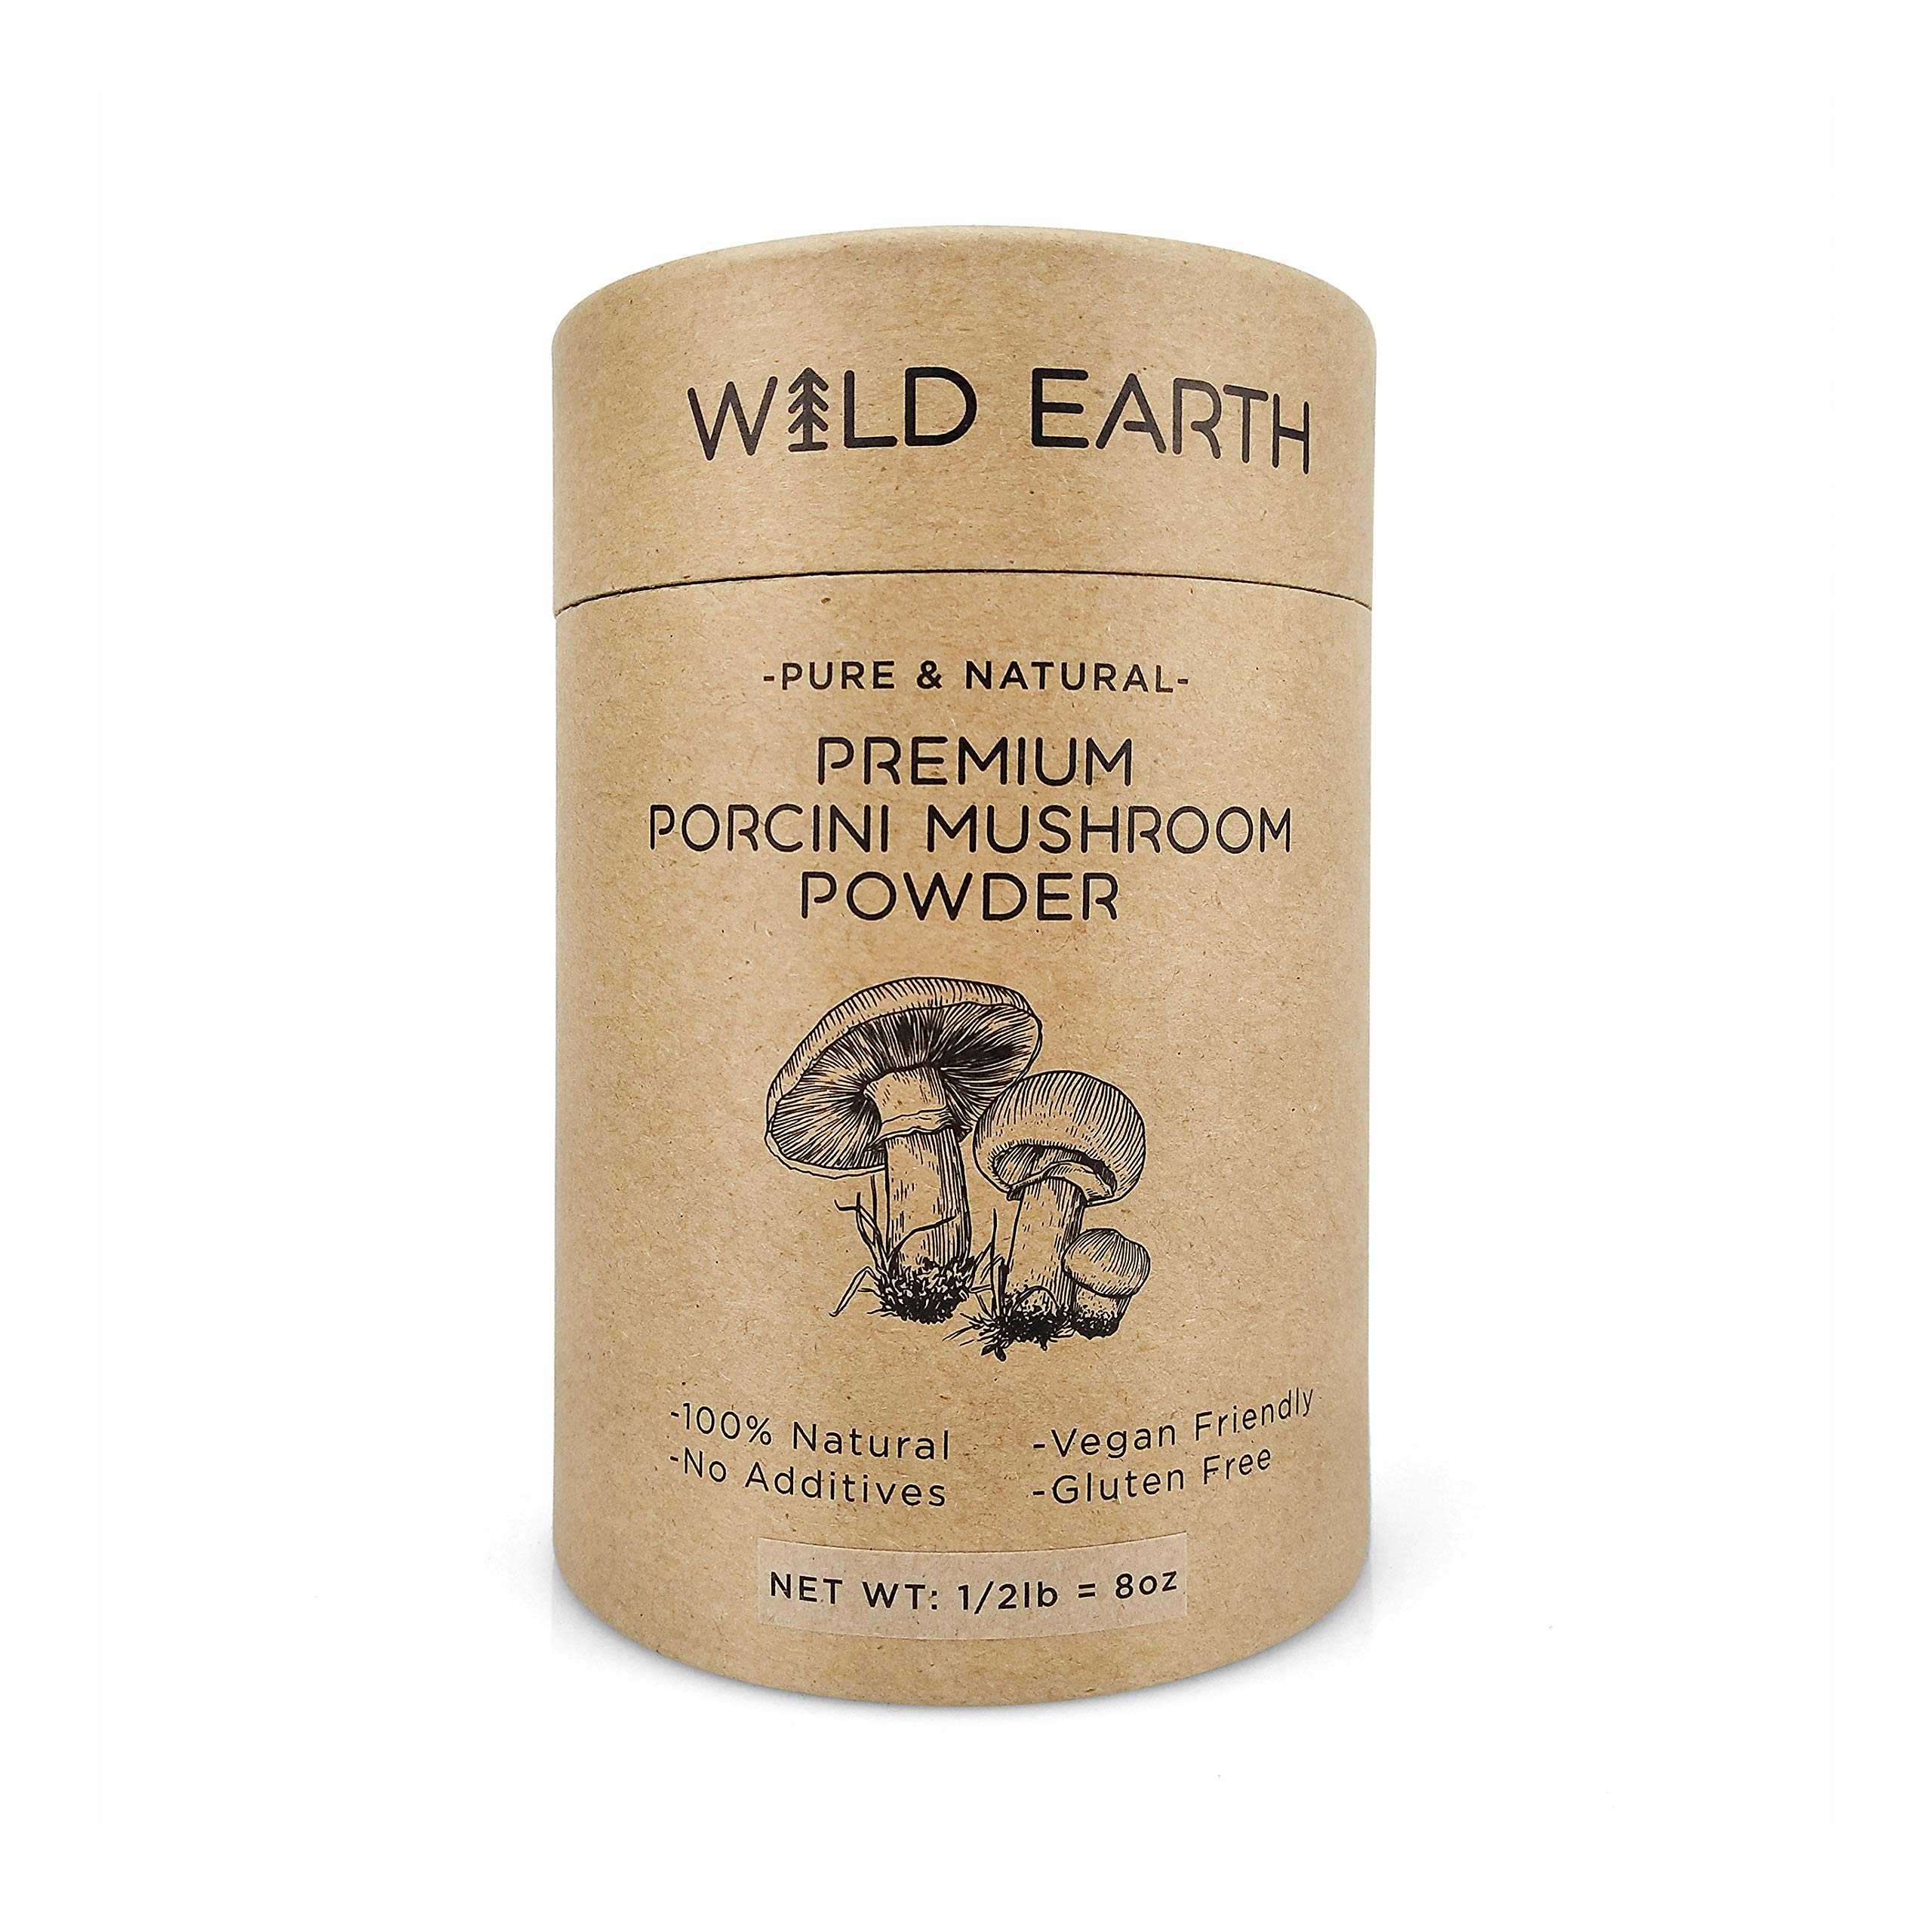 Porcini Mushroom Powder – Pure and Natural – No Additives – Vegan Friendly – Gluten Free – 1/2lb by Wild Earth